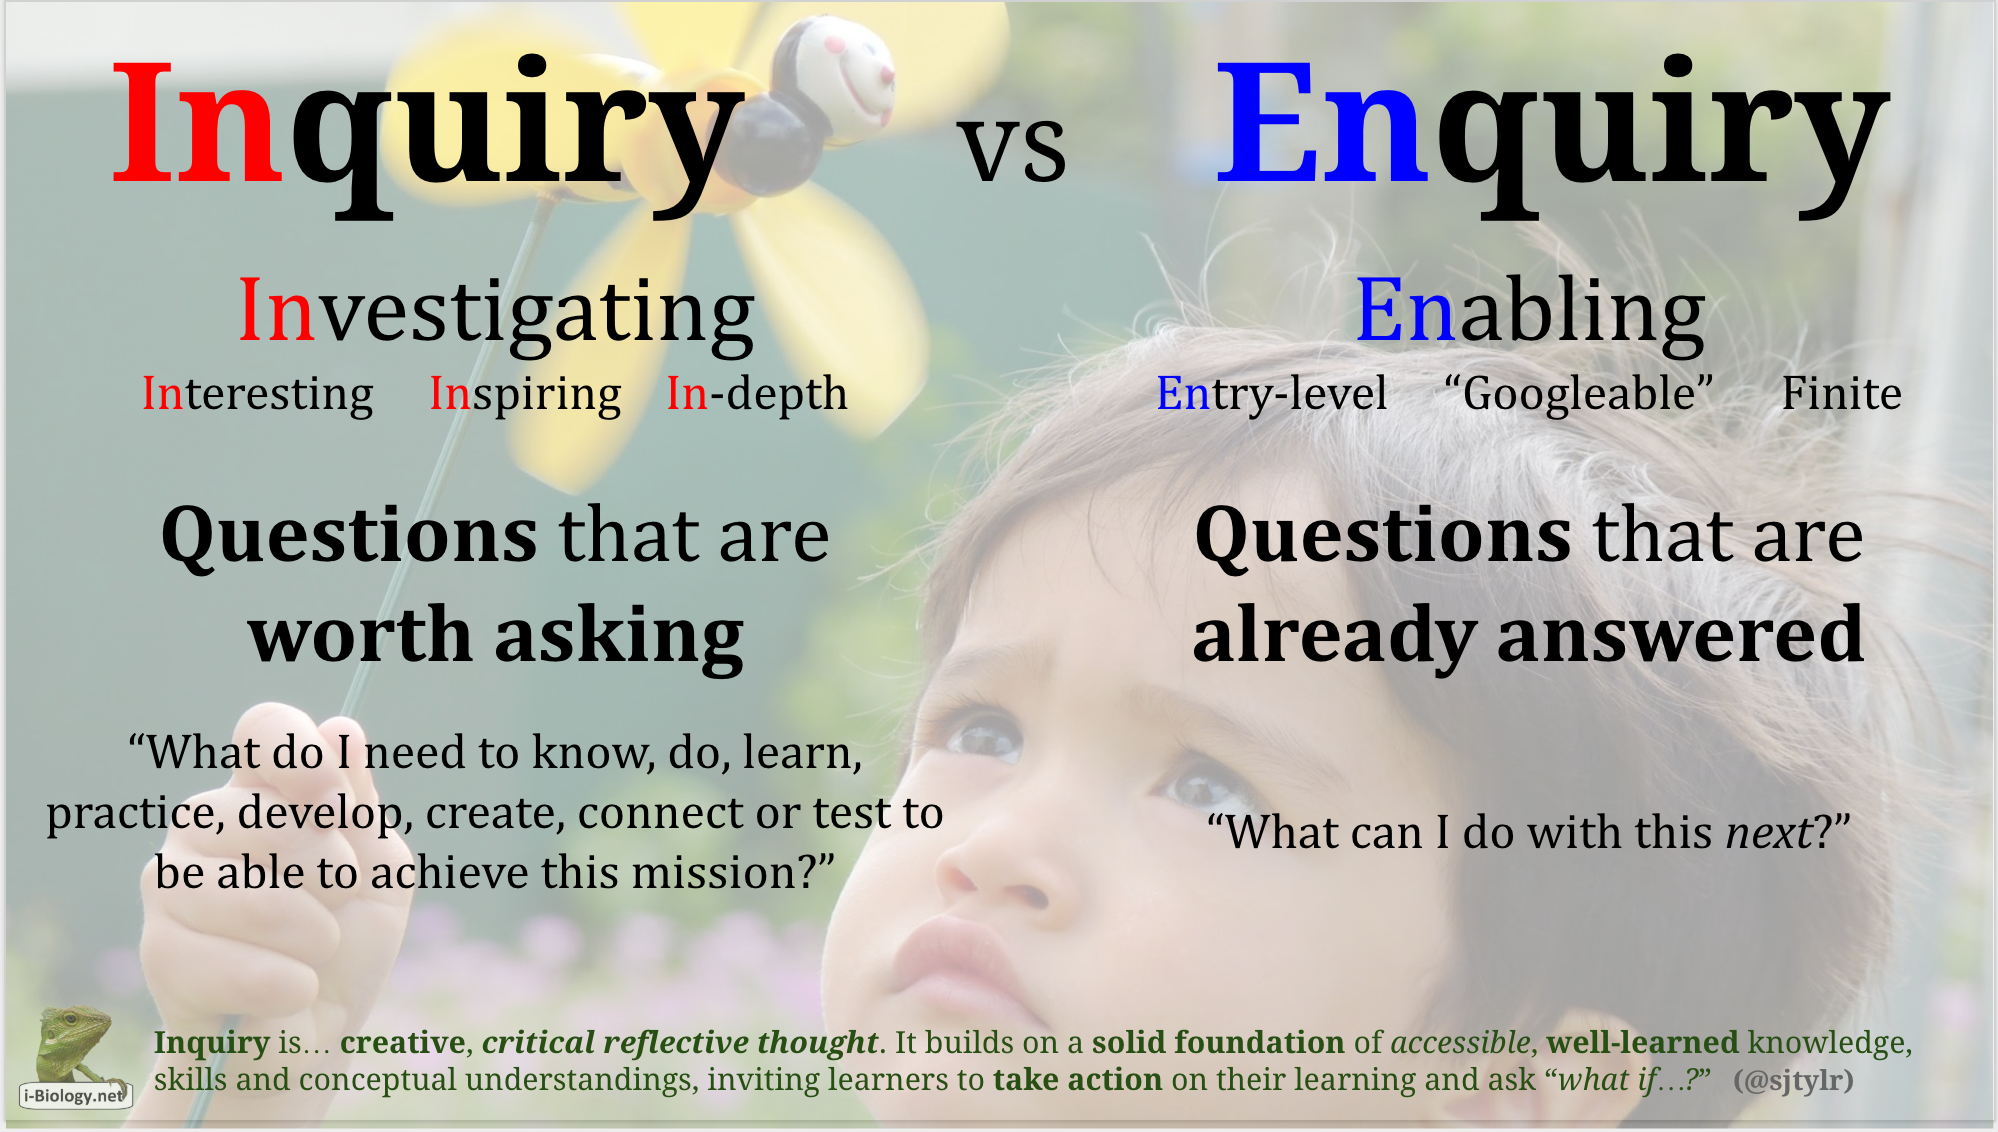 InquiryEnquiry@sjtylr